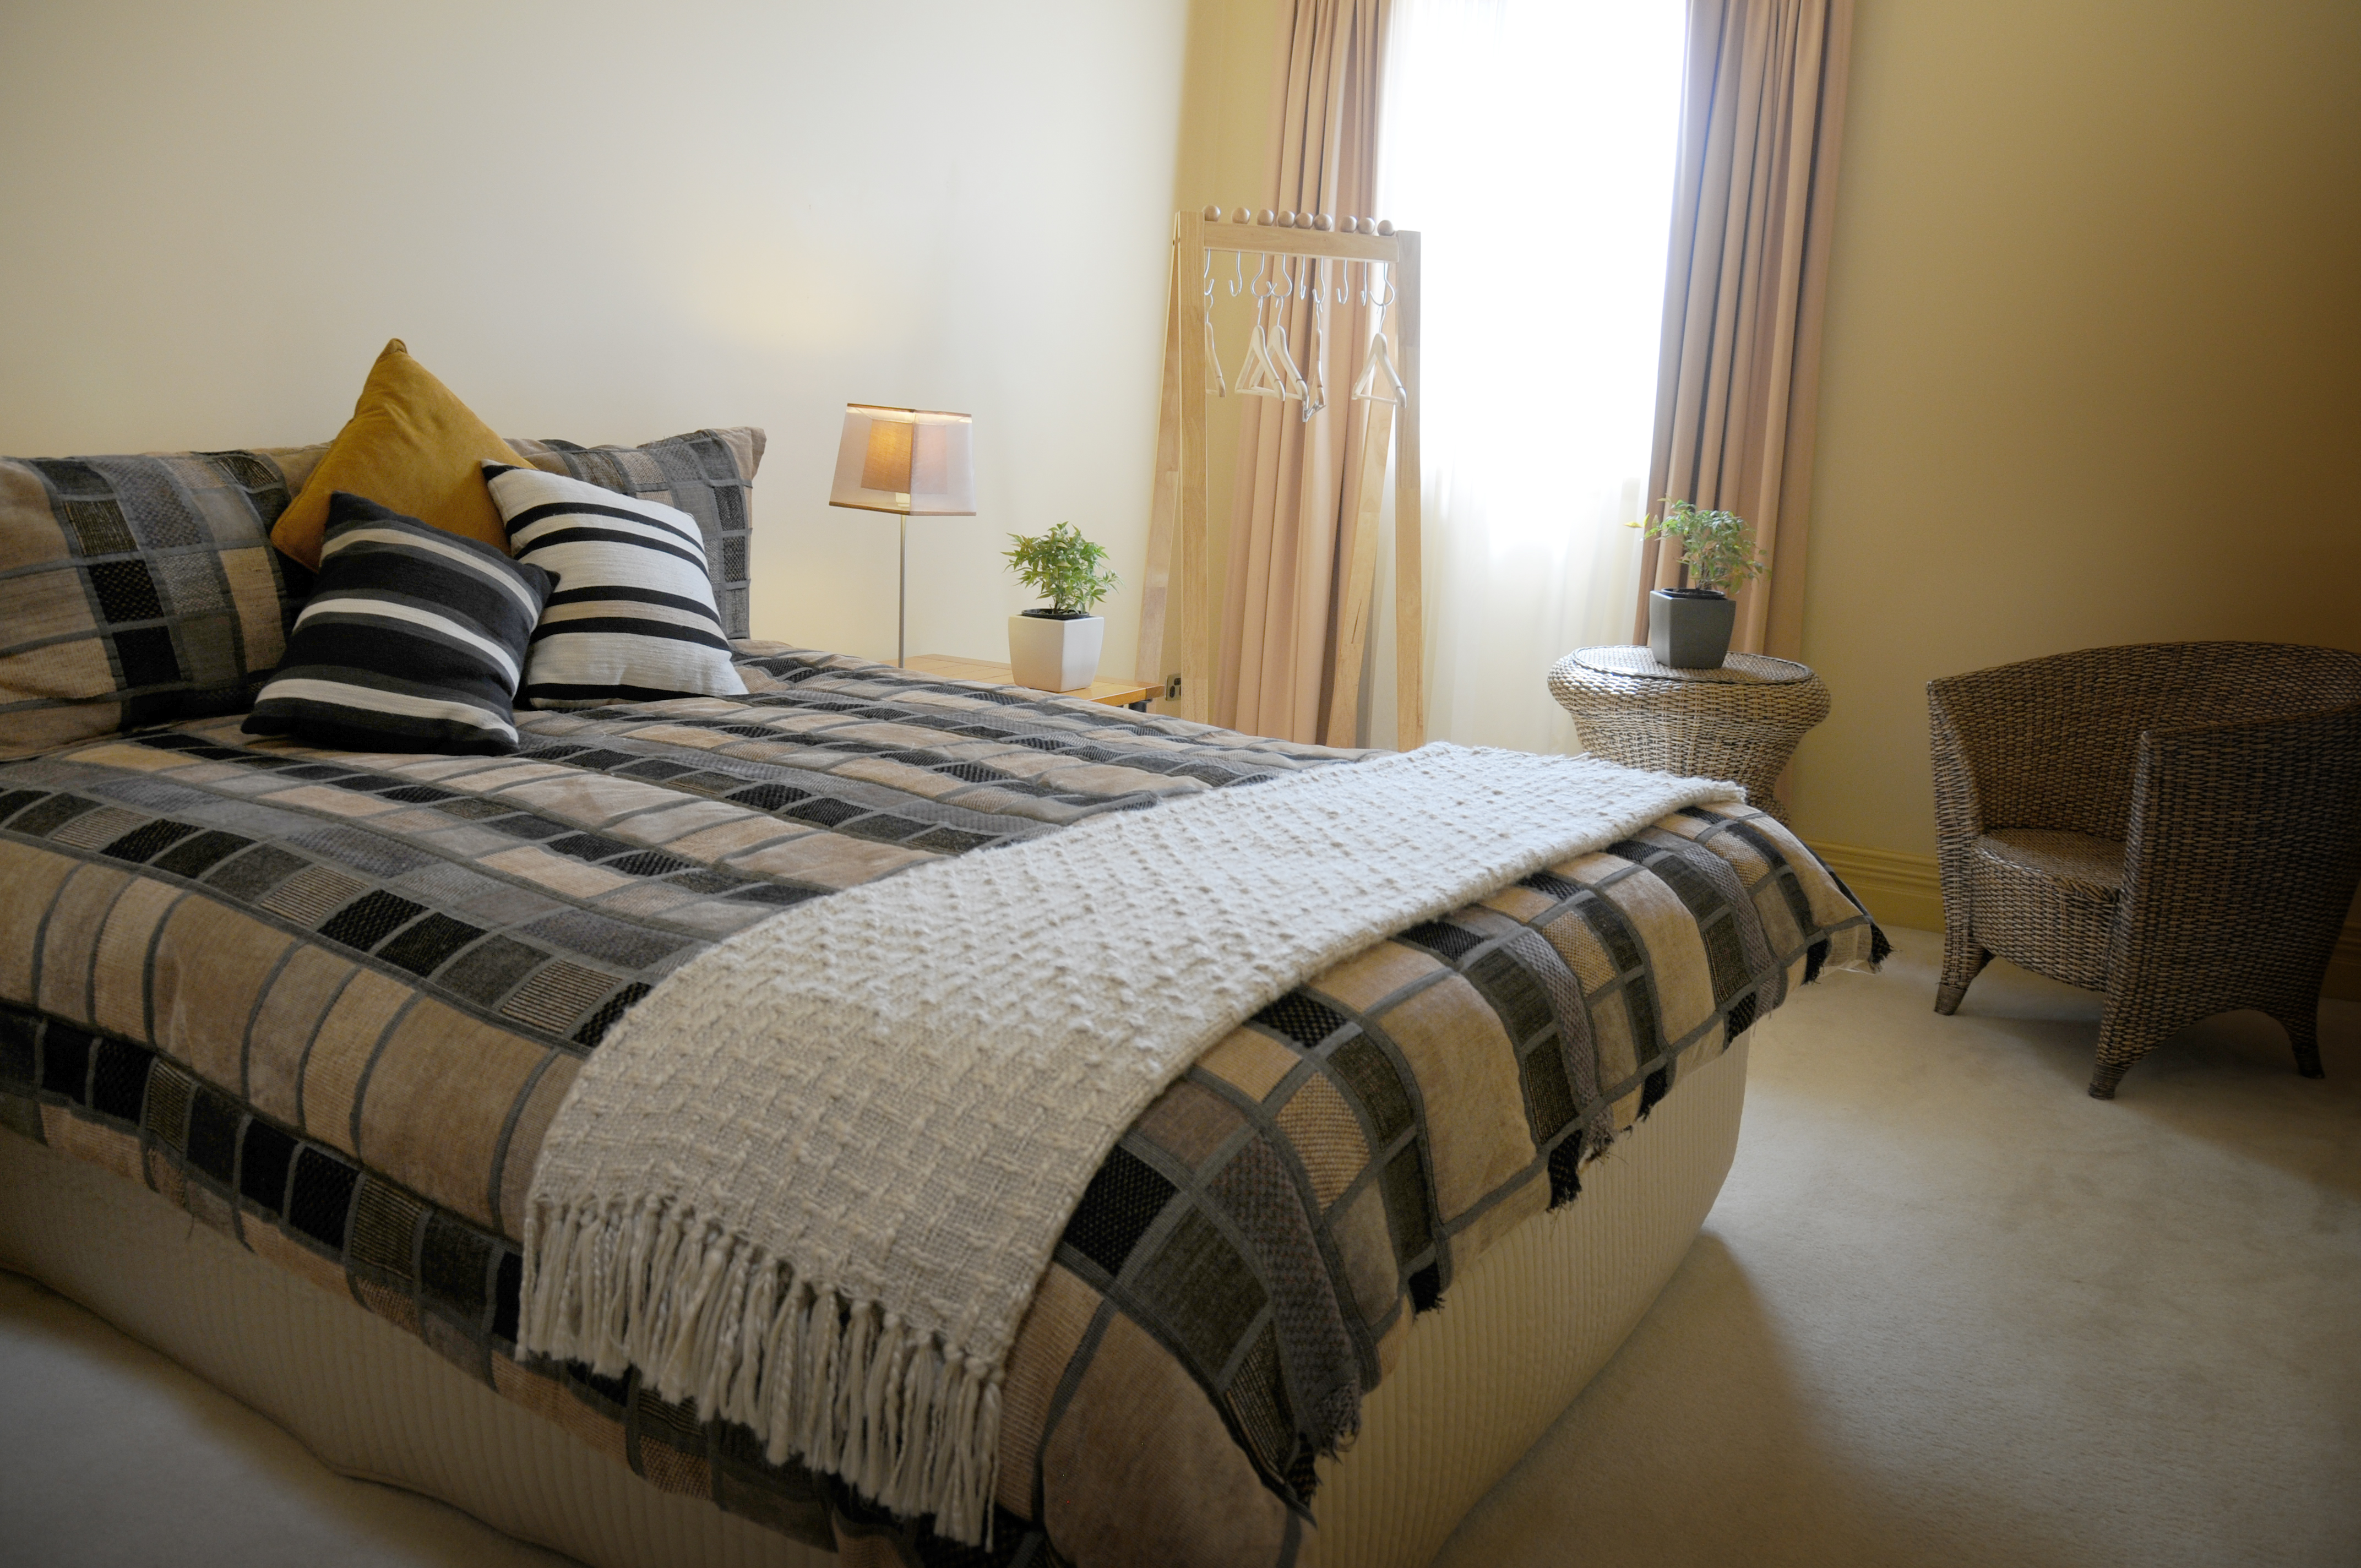 Cane Suite accommodation